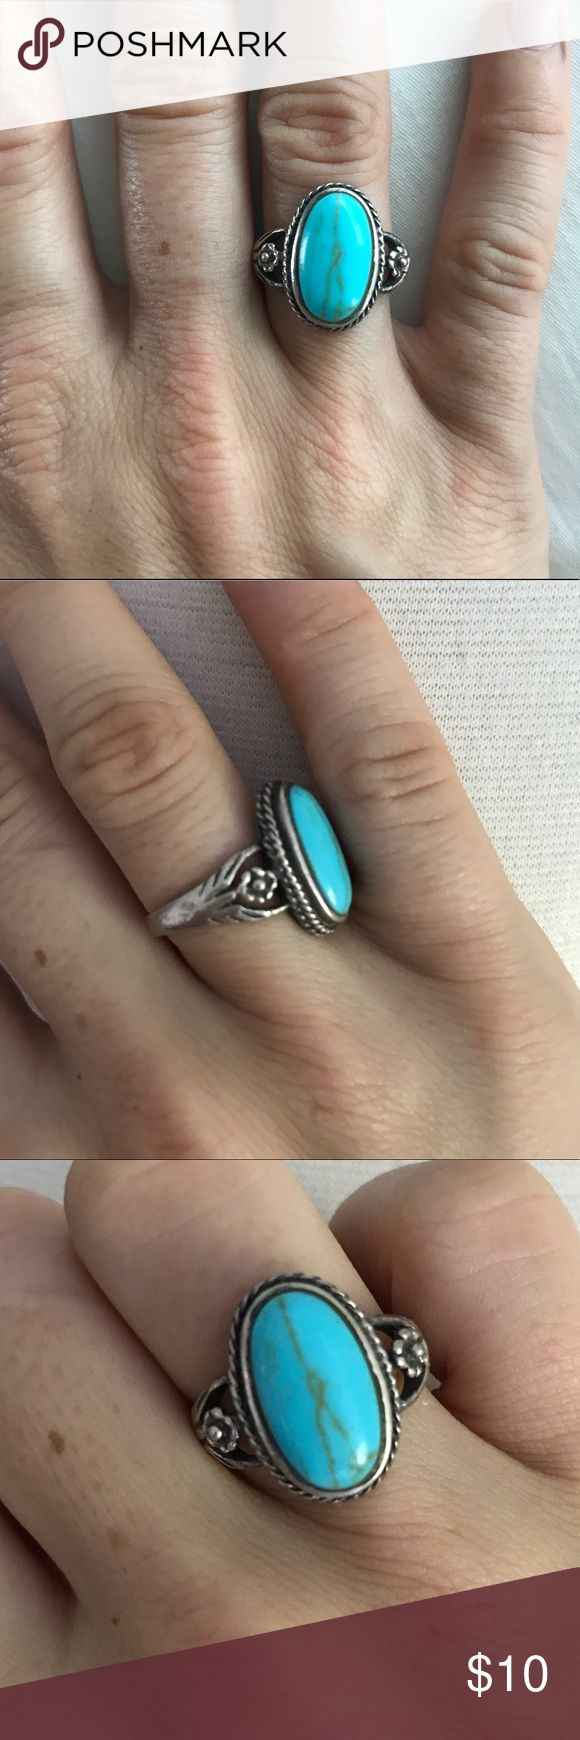 American Eagle Turquoise Ring American Eagle Turquoise Ring  • Purchased from American Eagle in 2013 • Pretty & bright turquoise colored center with silver ring   No trades please. Reasonable offers on items and bundles considered. Bundle discount is 15% off 2 or more items ✨ American Eagle Outfitters Jewelry Rings